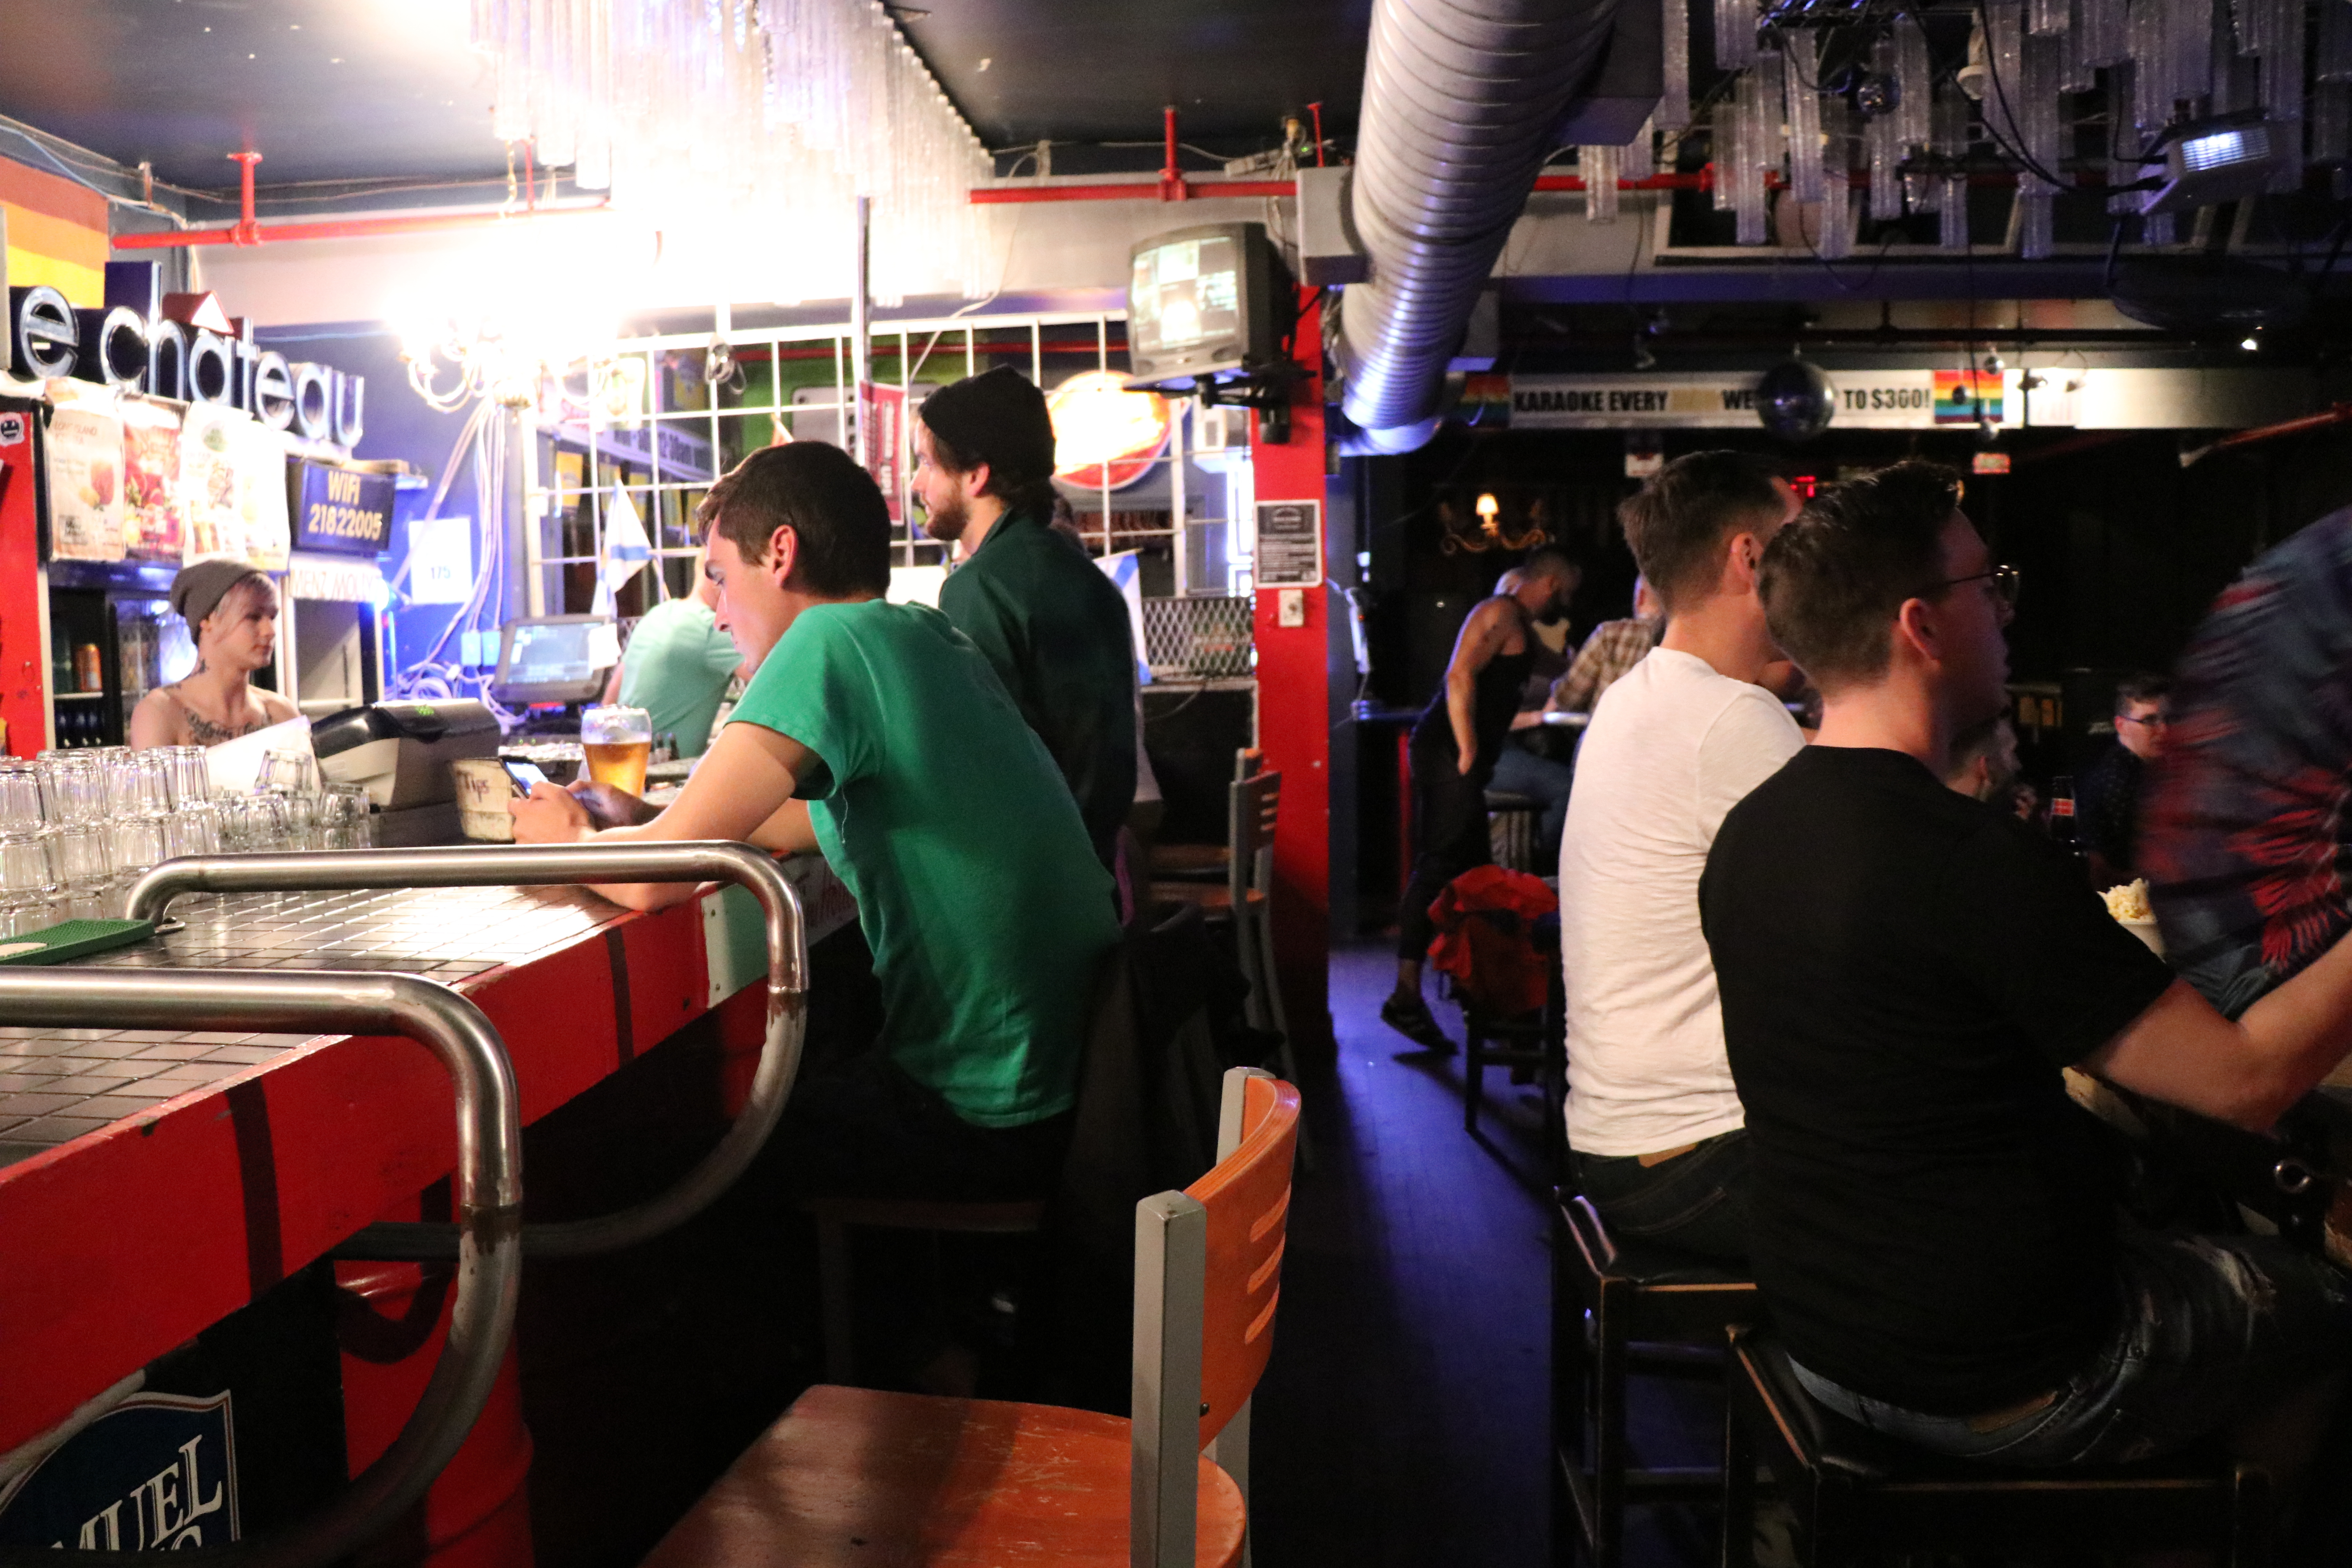 Menz & Mollyz Bar on Gottingen Street hosts drag shows. (Emma Davie/CBC)